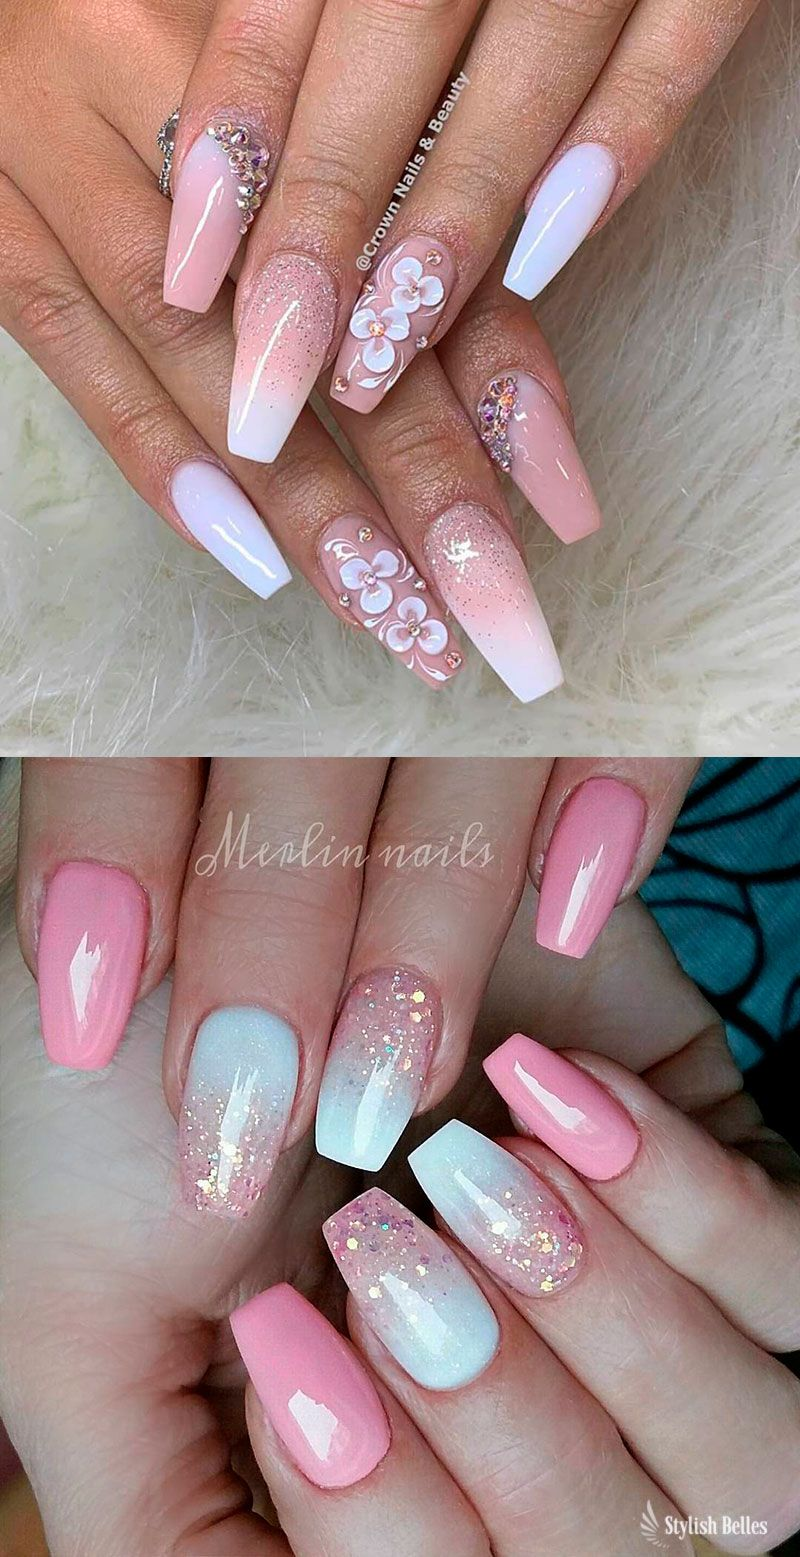 Gorgeous Pink And White Ombre Nails With Glitter Ideas Coffinnails Pinkandwhitenails Glitternails Coffin Nails Designs Ombre Nails Pink Nails